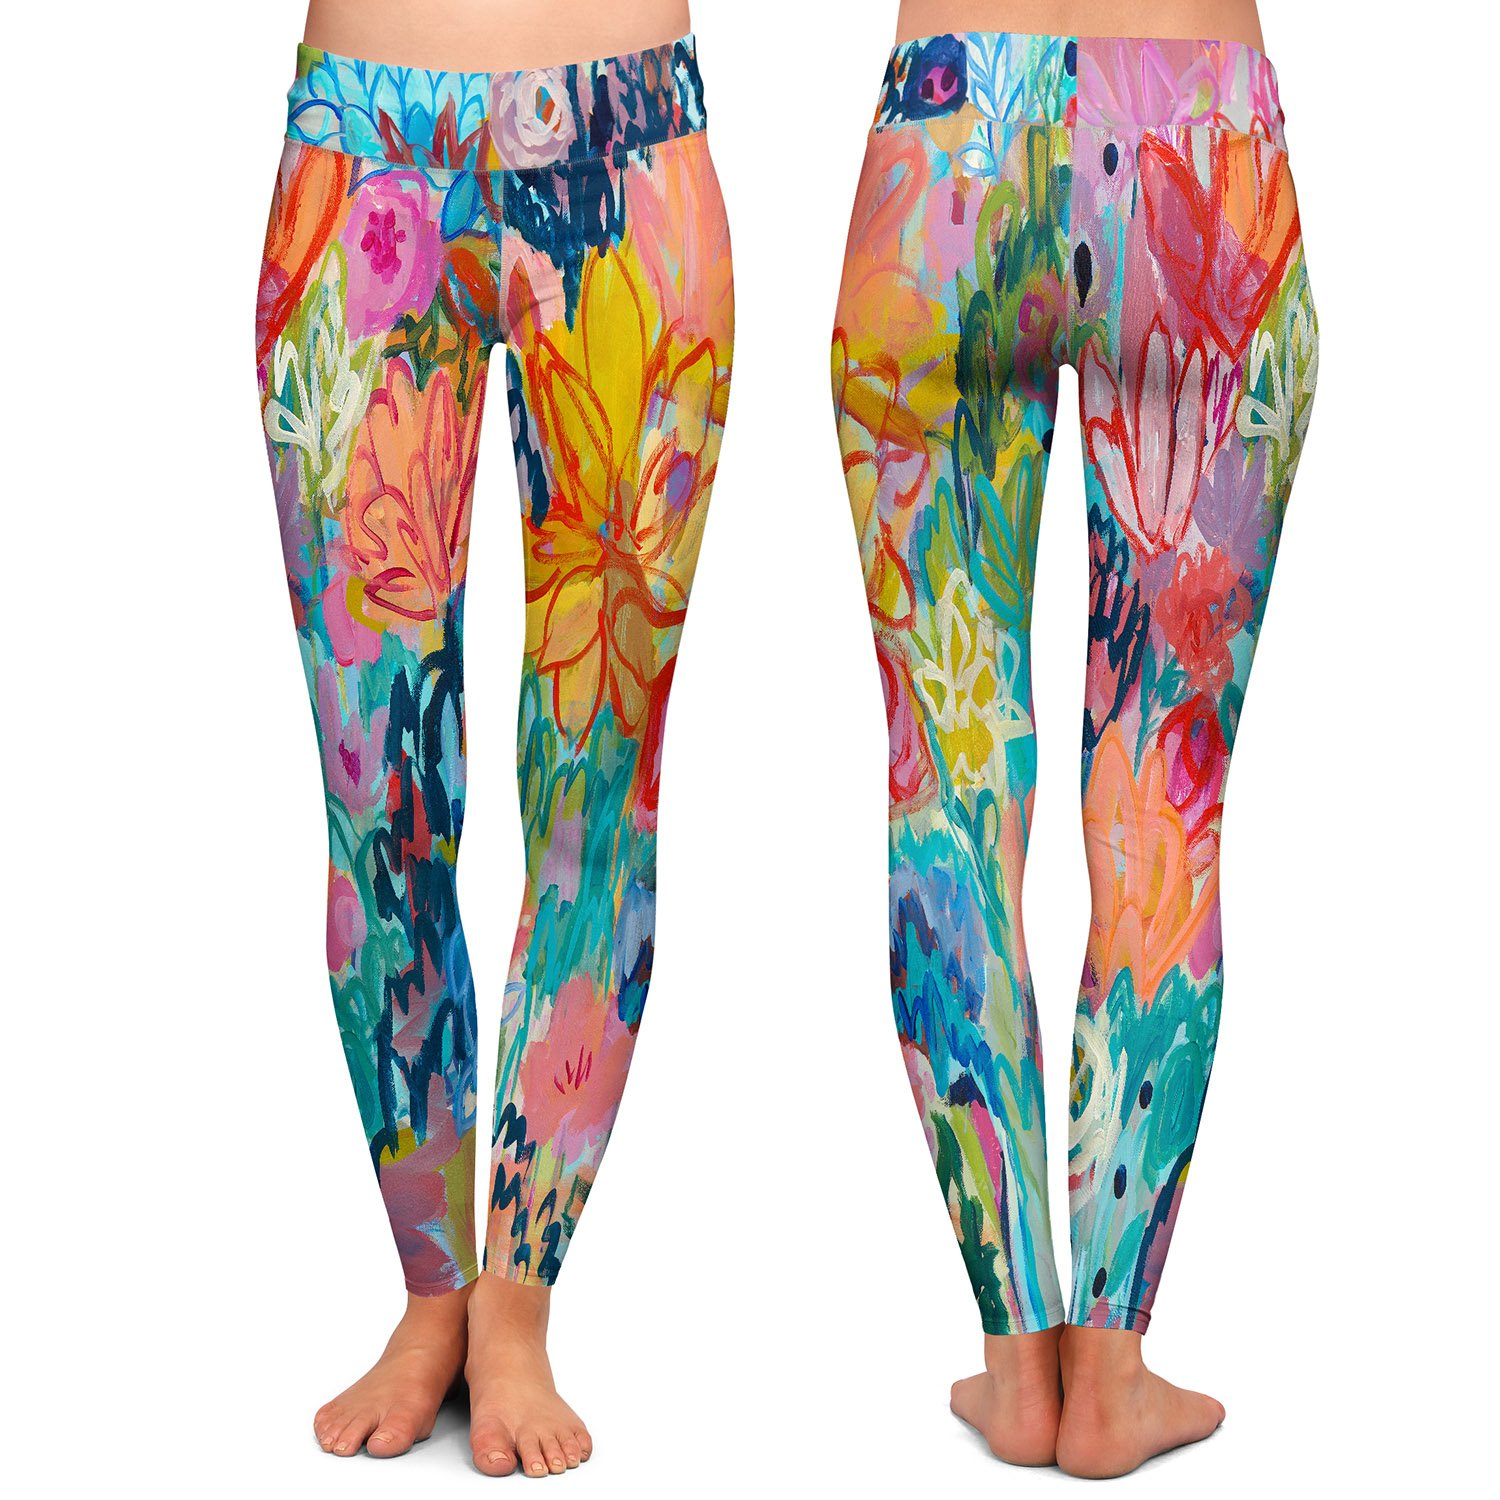 Athletic Yoga Leggings from DiaNoche Designs by artist Carrie Schmitt - Exhalation at Amazon Womens Clothing store: